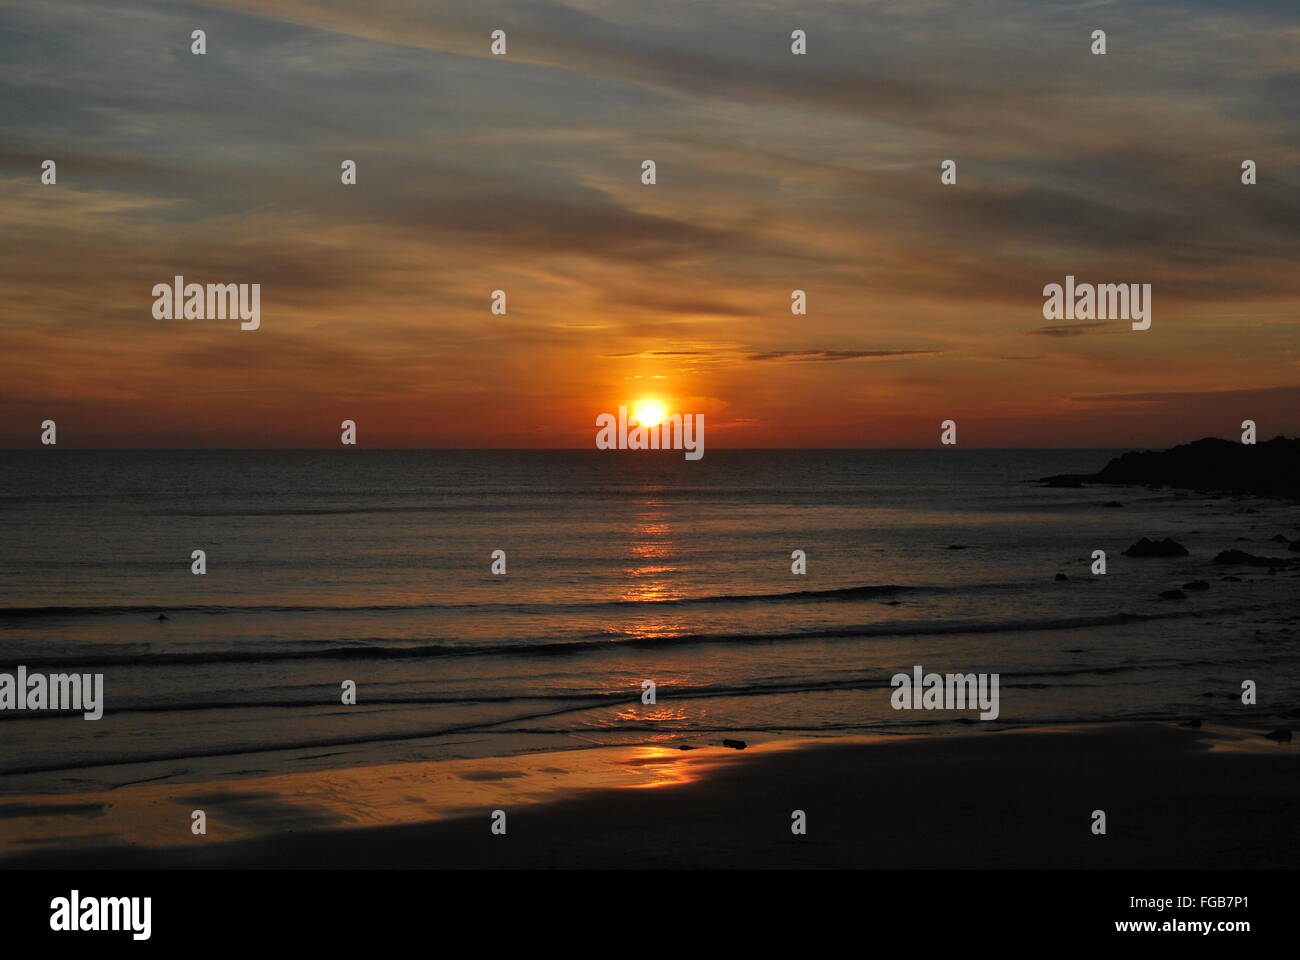 Scenic Shot Of Sunset Over The Sea - Stock Image